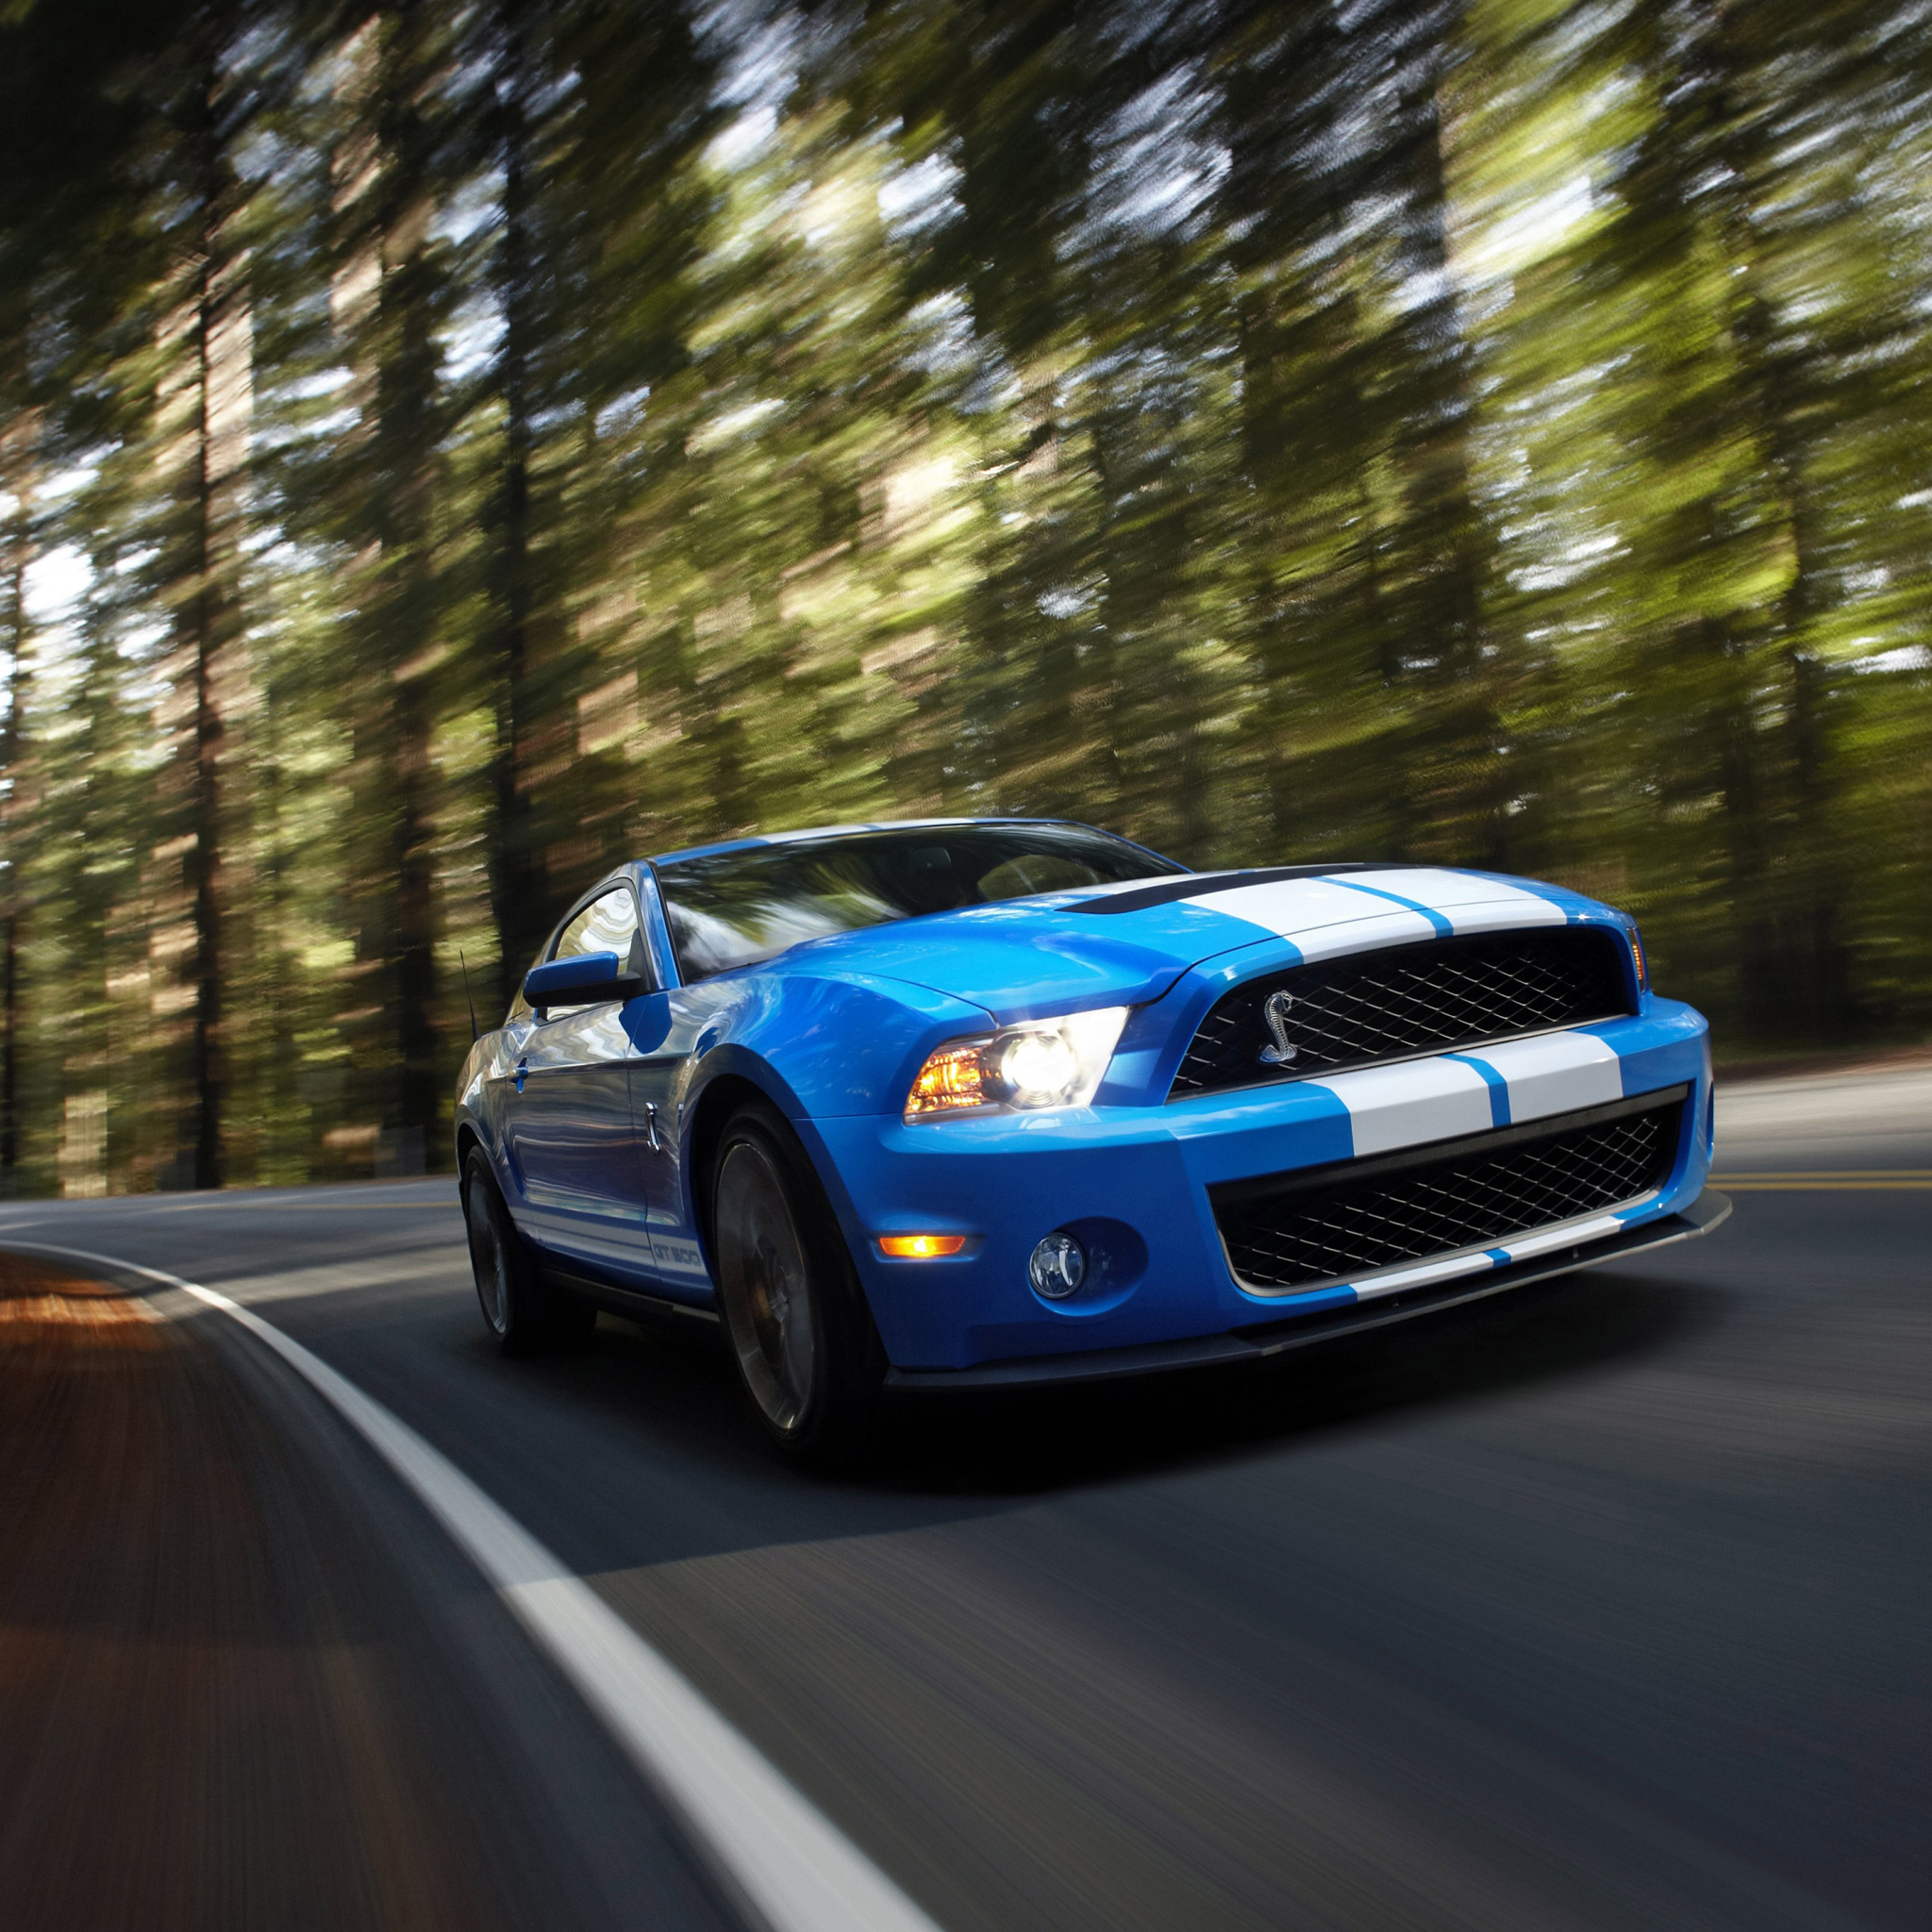 Ford Mustang Shelby GT500 3Wallpapers iPad Ford Mustang Shelby GT500   iPad